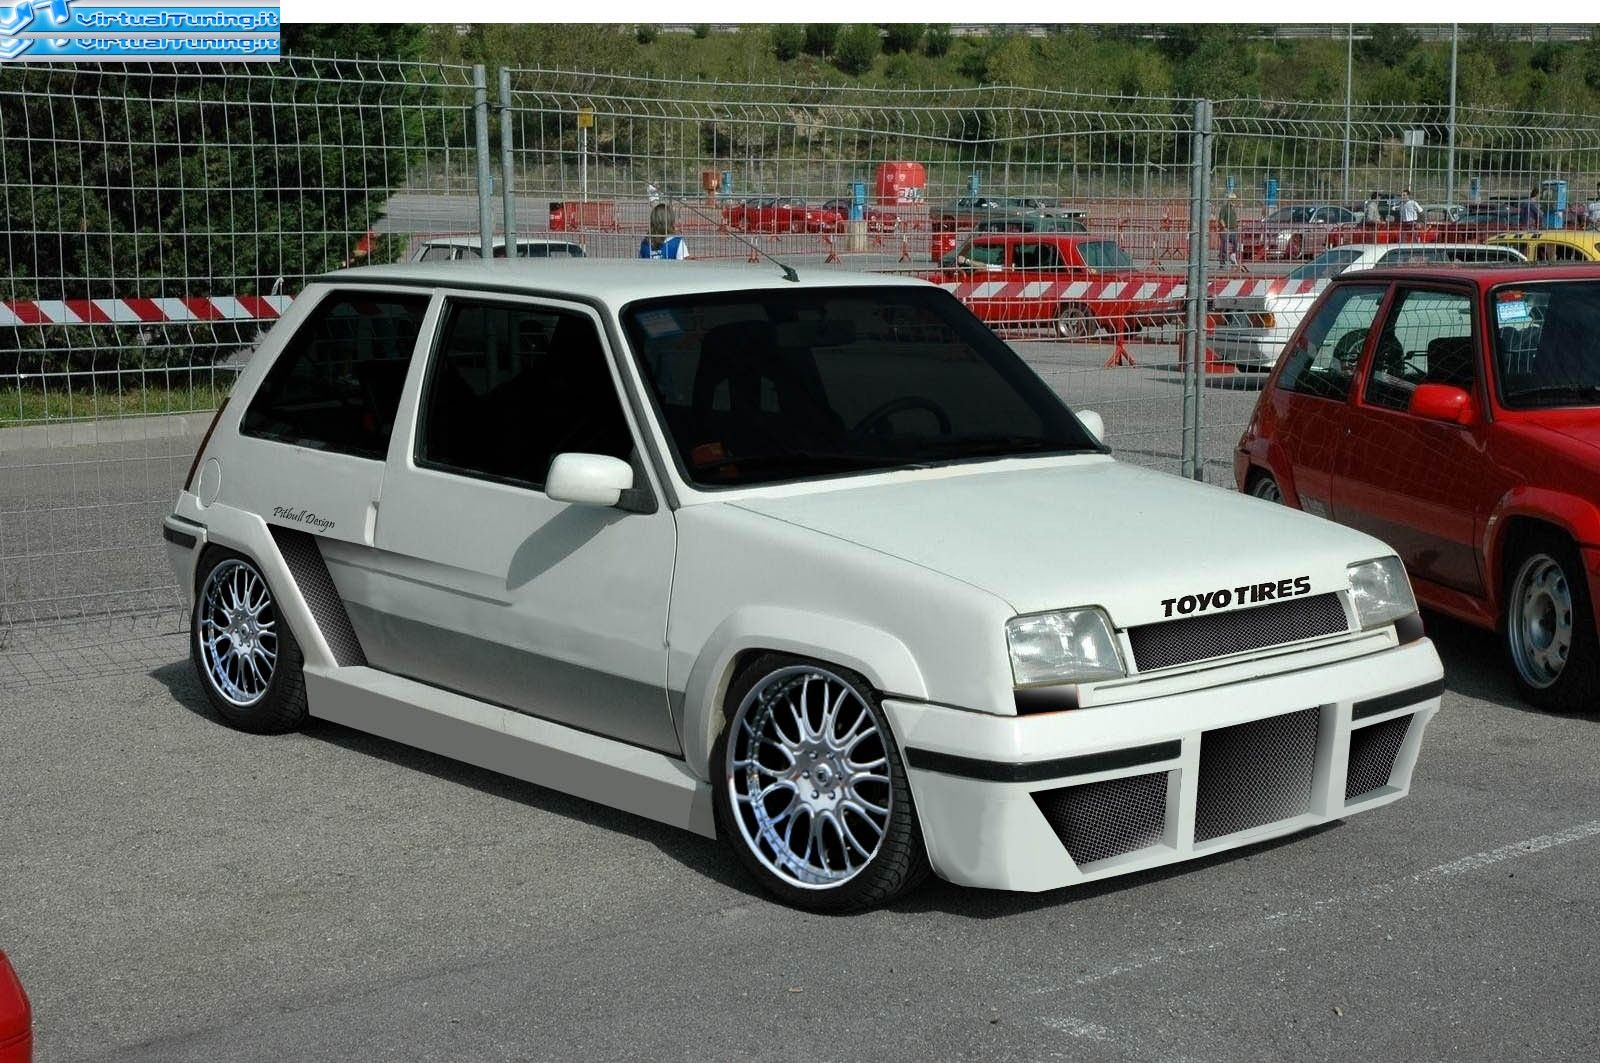 renault 5 gt turbo google search renault 5 gt pinterest renault 5 gt turbo renault 5. Black Bedroom Furniture Sets. Home Design Ideas